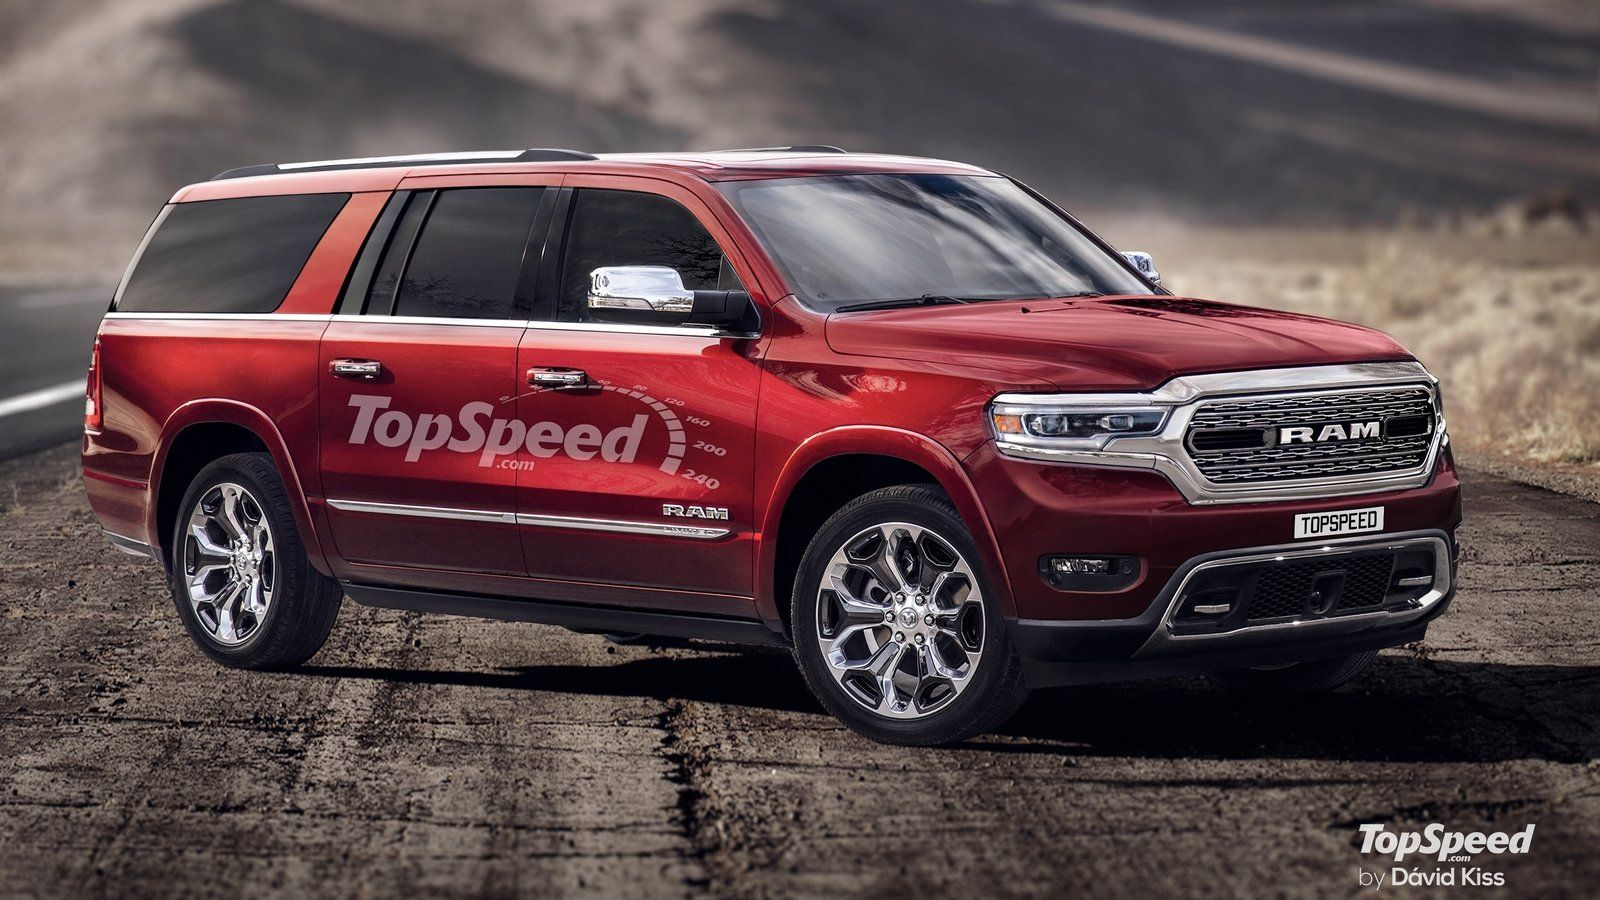 2020 Ram Ramcharger Release Date And Price Bmw Suv New Cars Car